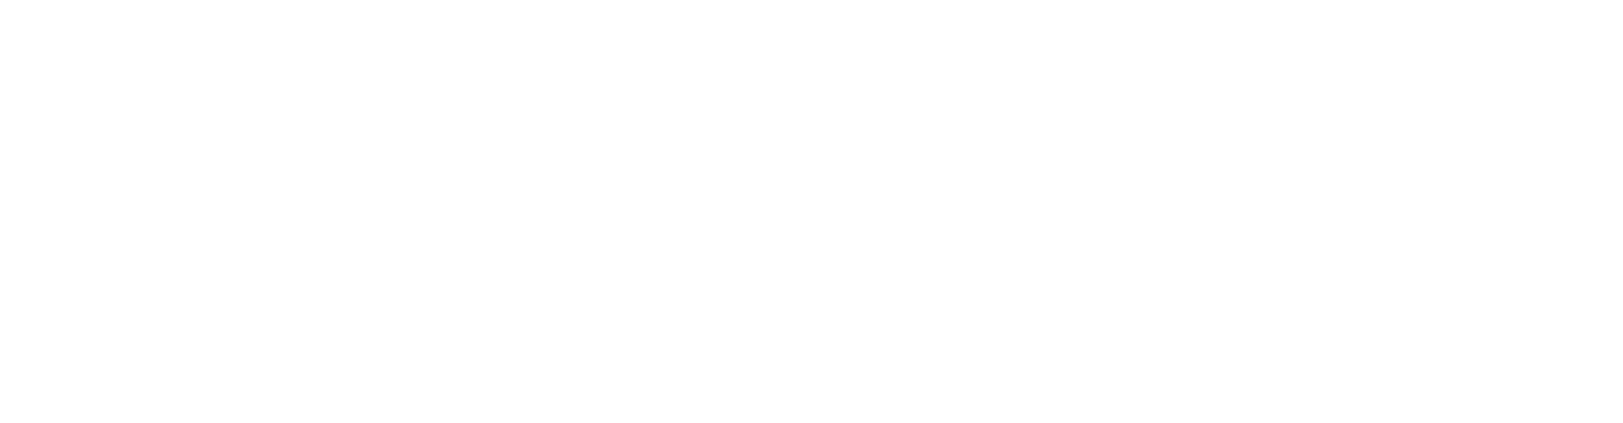 this is an image of the rragentsacademy.com logo